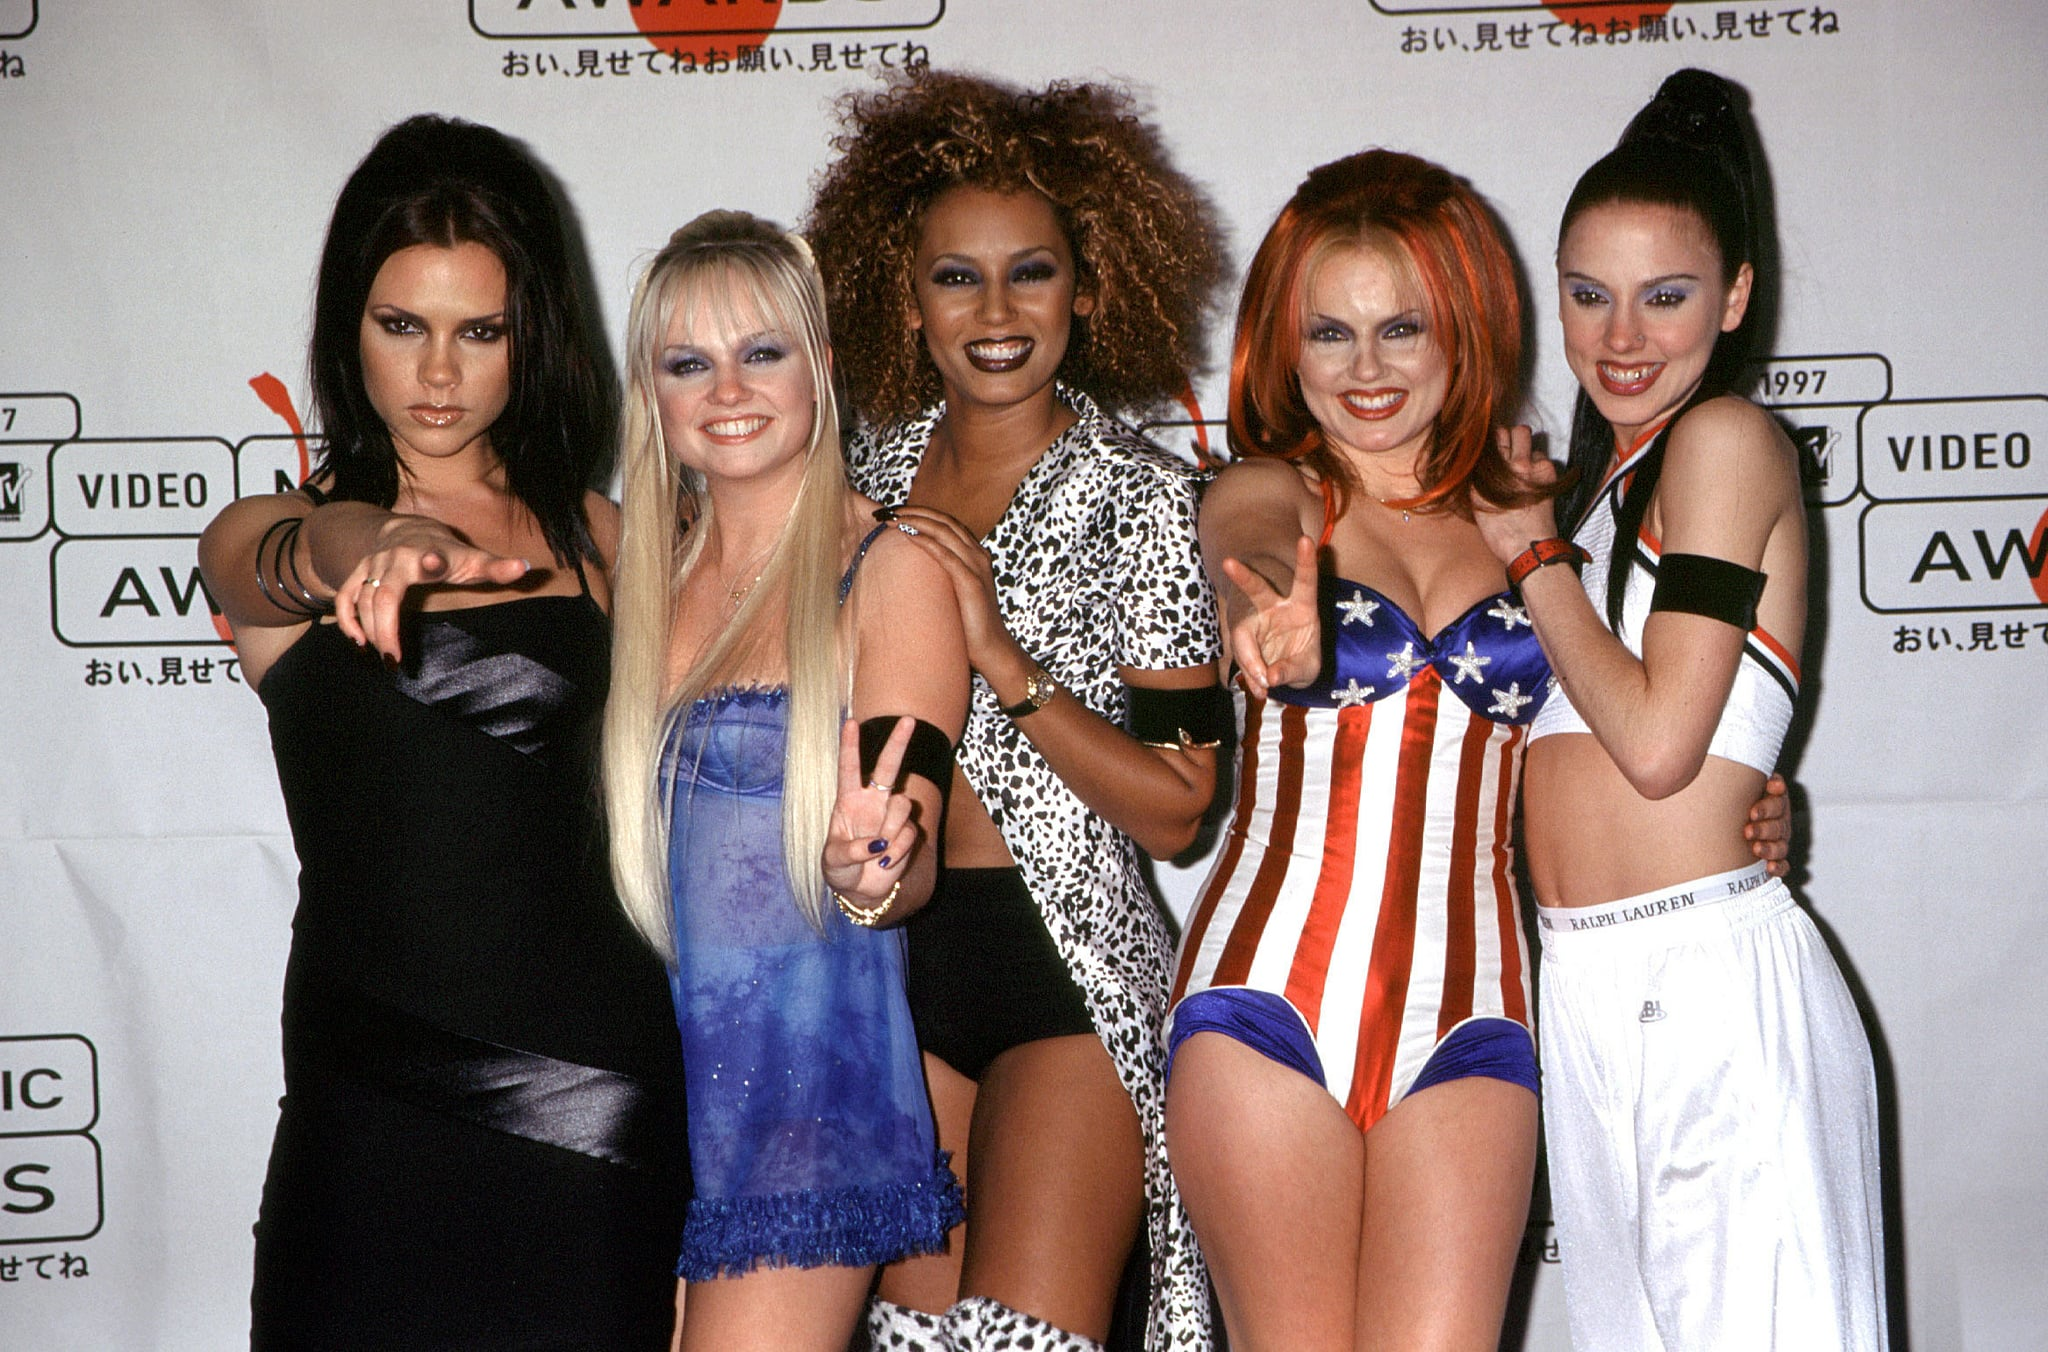 """The Spice Girls won Best Video for """"Wannabe"""" in 1997, and at the show all five members wore black arm bands as a symbol of their sadness over the passing of Princess Diana just days earlier."""